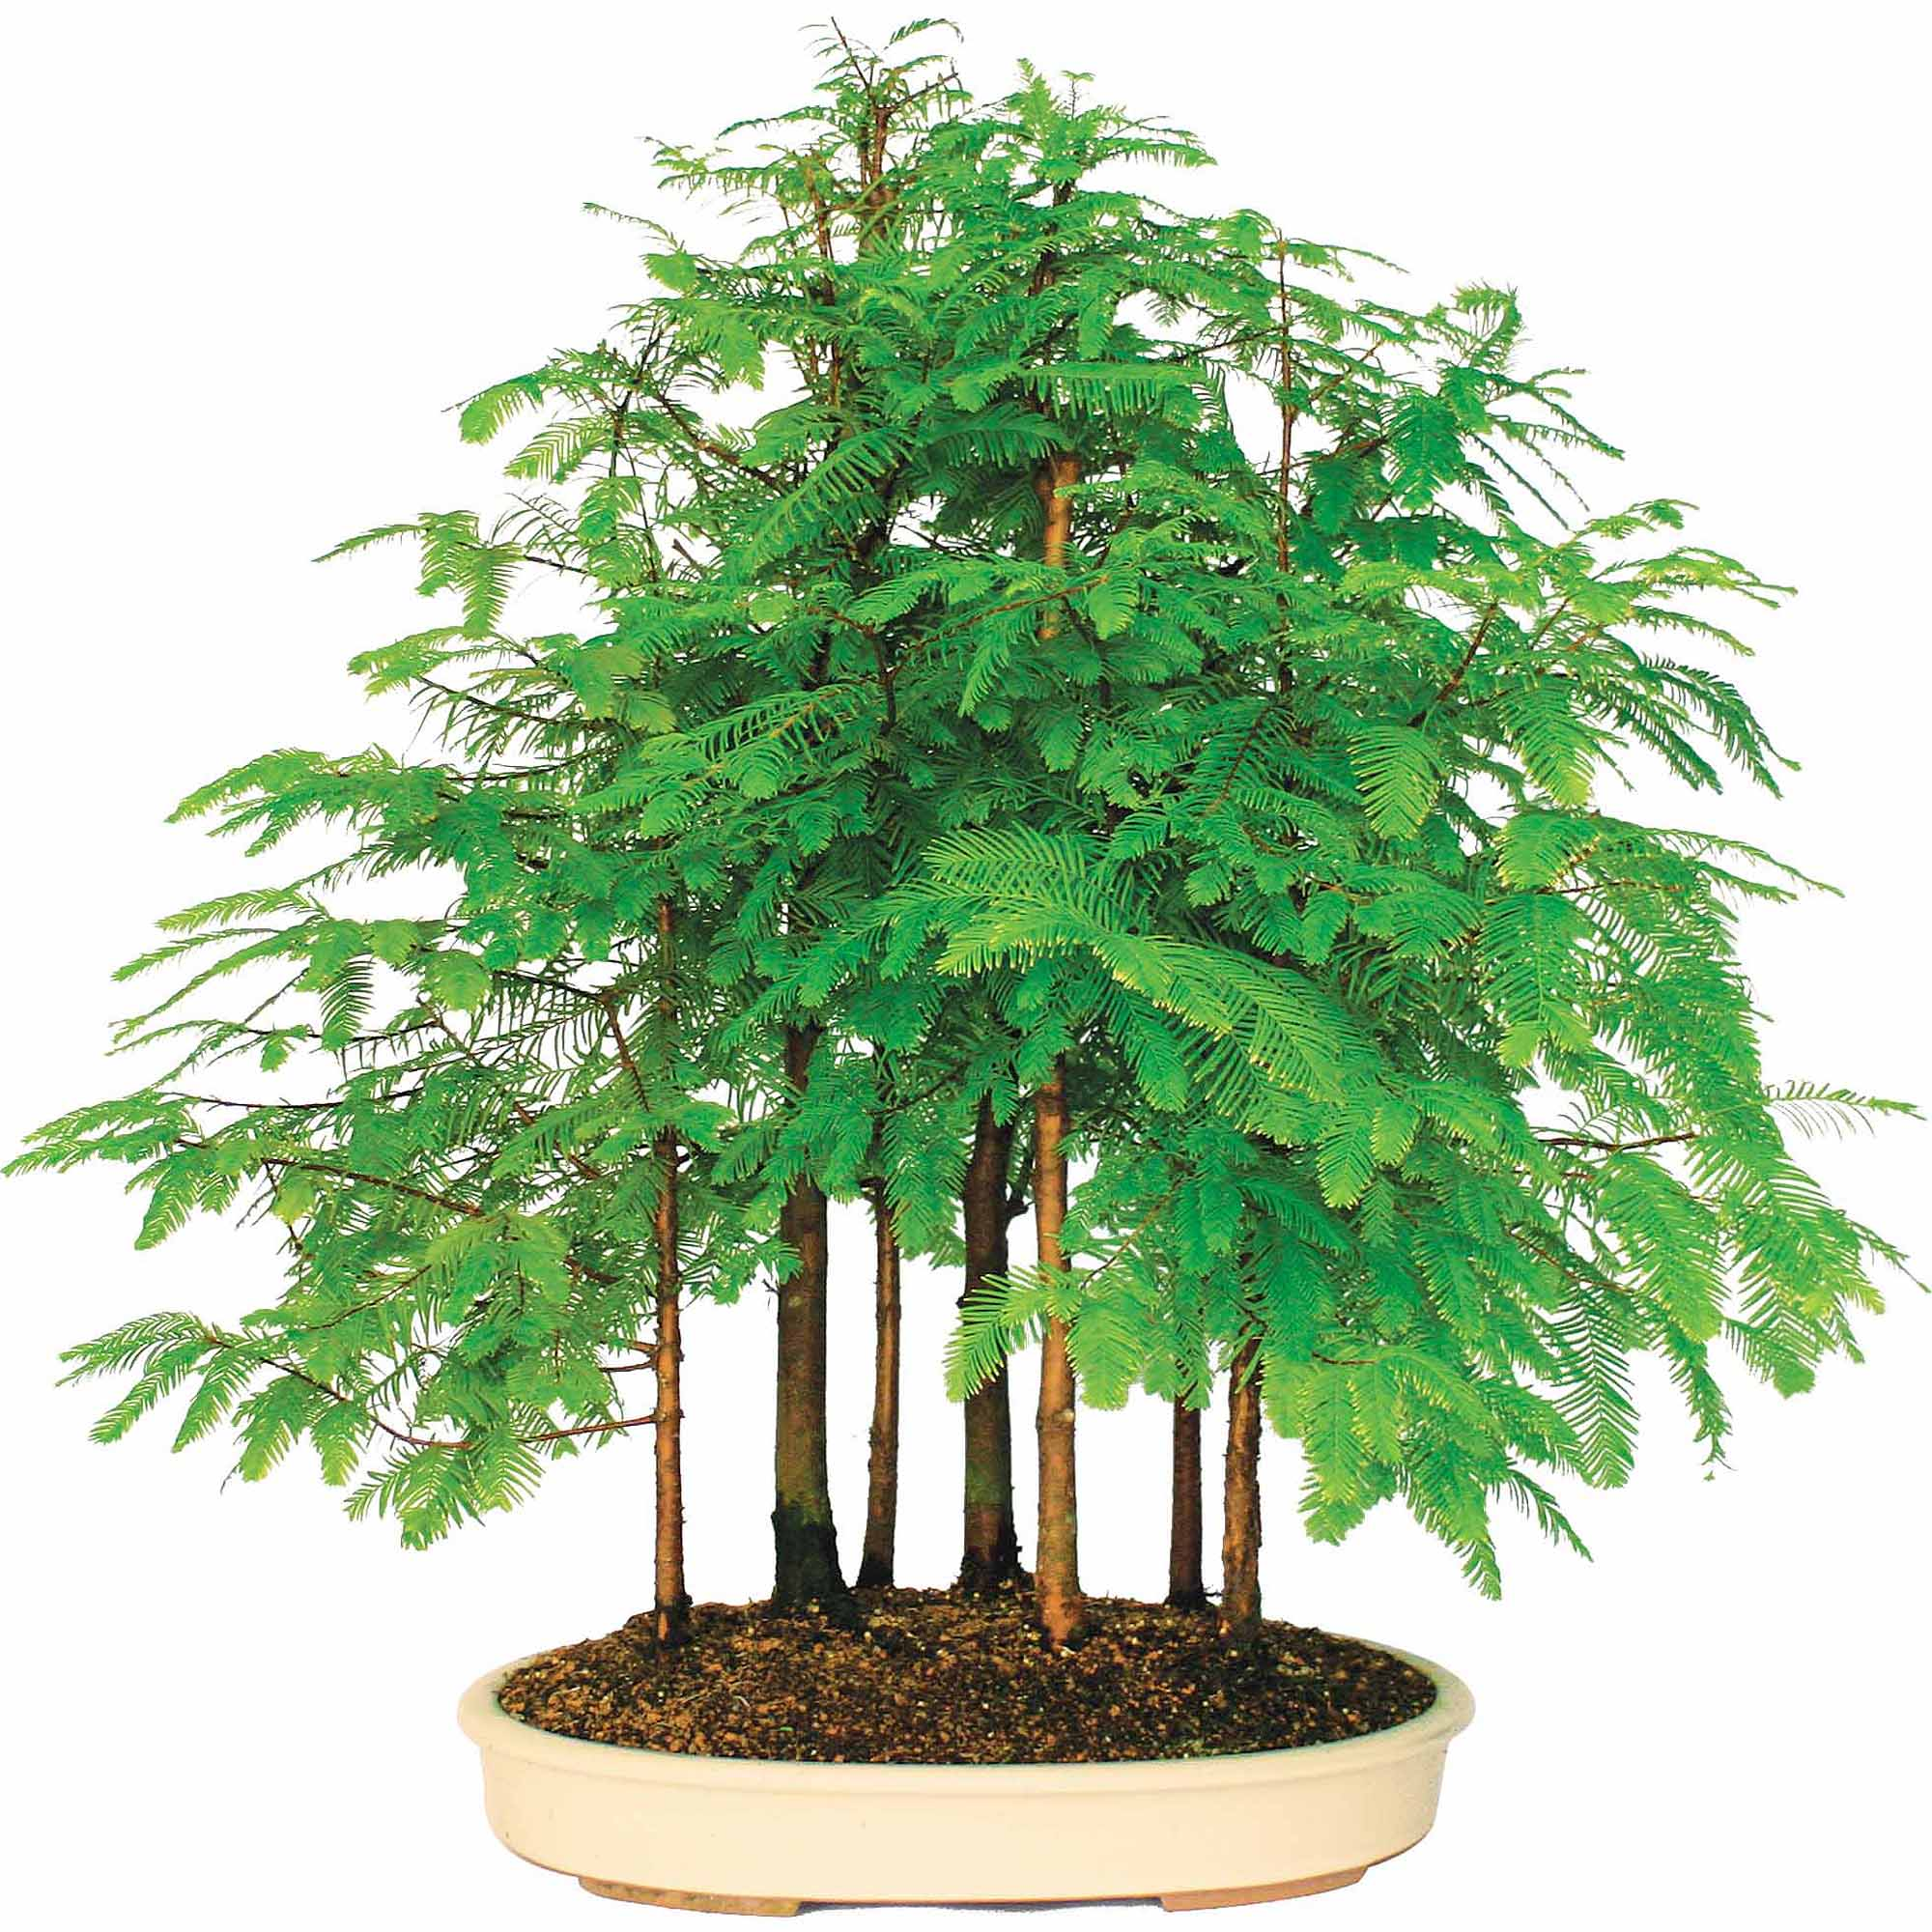 Brussel's Dawn Redwood Grove Bonsai X Large (Outdoor) by Brussel's Bonsai